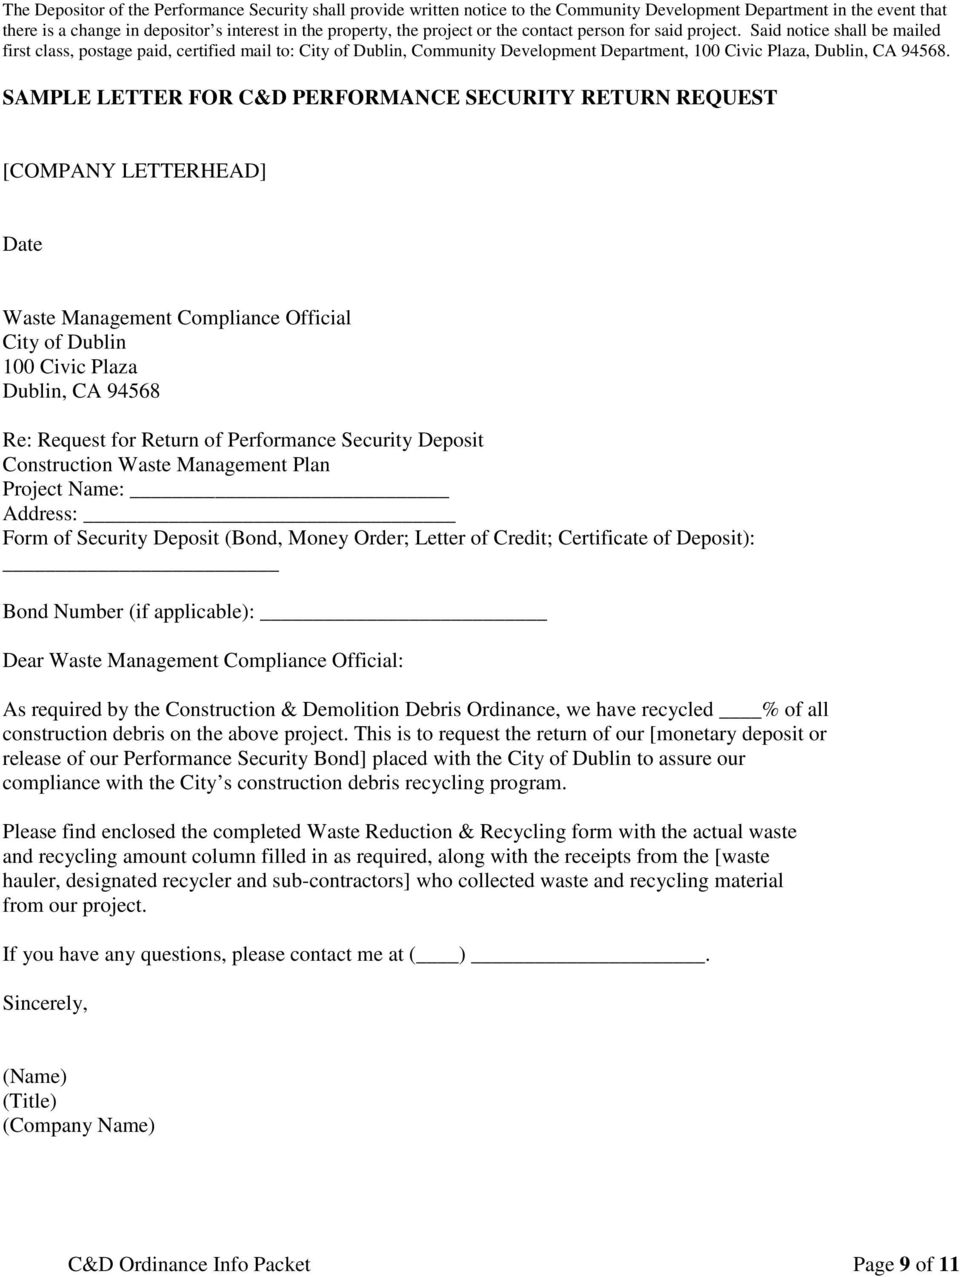 SAMPLE LETTER FOR C&D PERFORMANCE SECURITY RETURN REQUEST [COMPANY LETTERHEAD] Date Waste Management Compliance Official City of Dublin 100 Civic Plaza Dublin, CA 94568 Re: Request for Return of